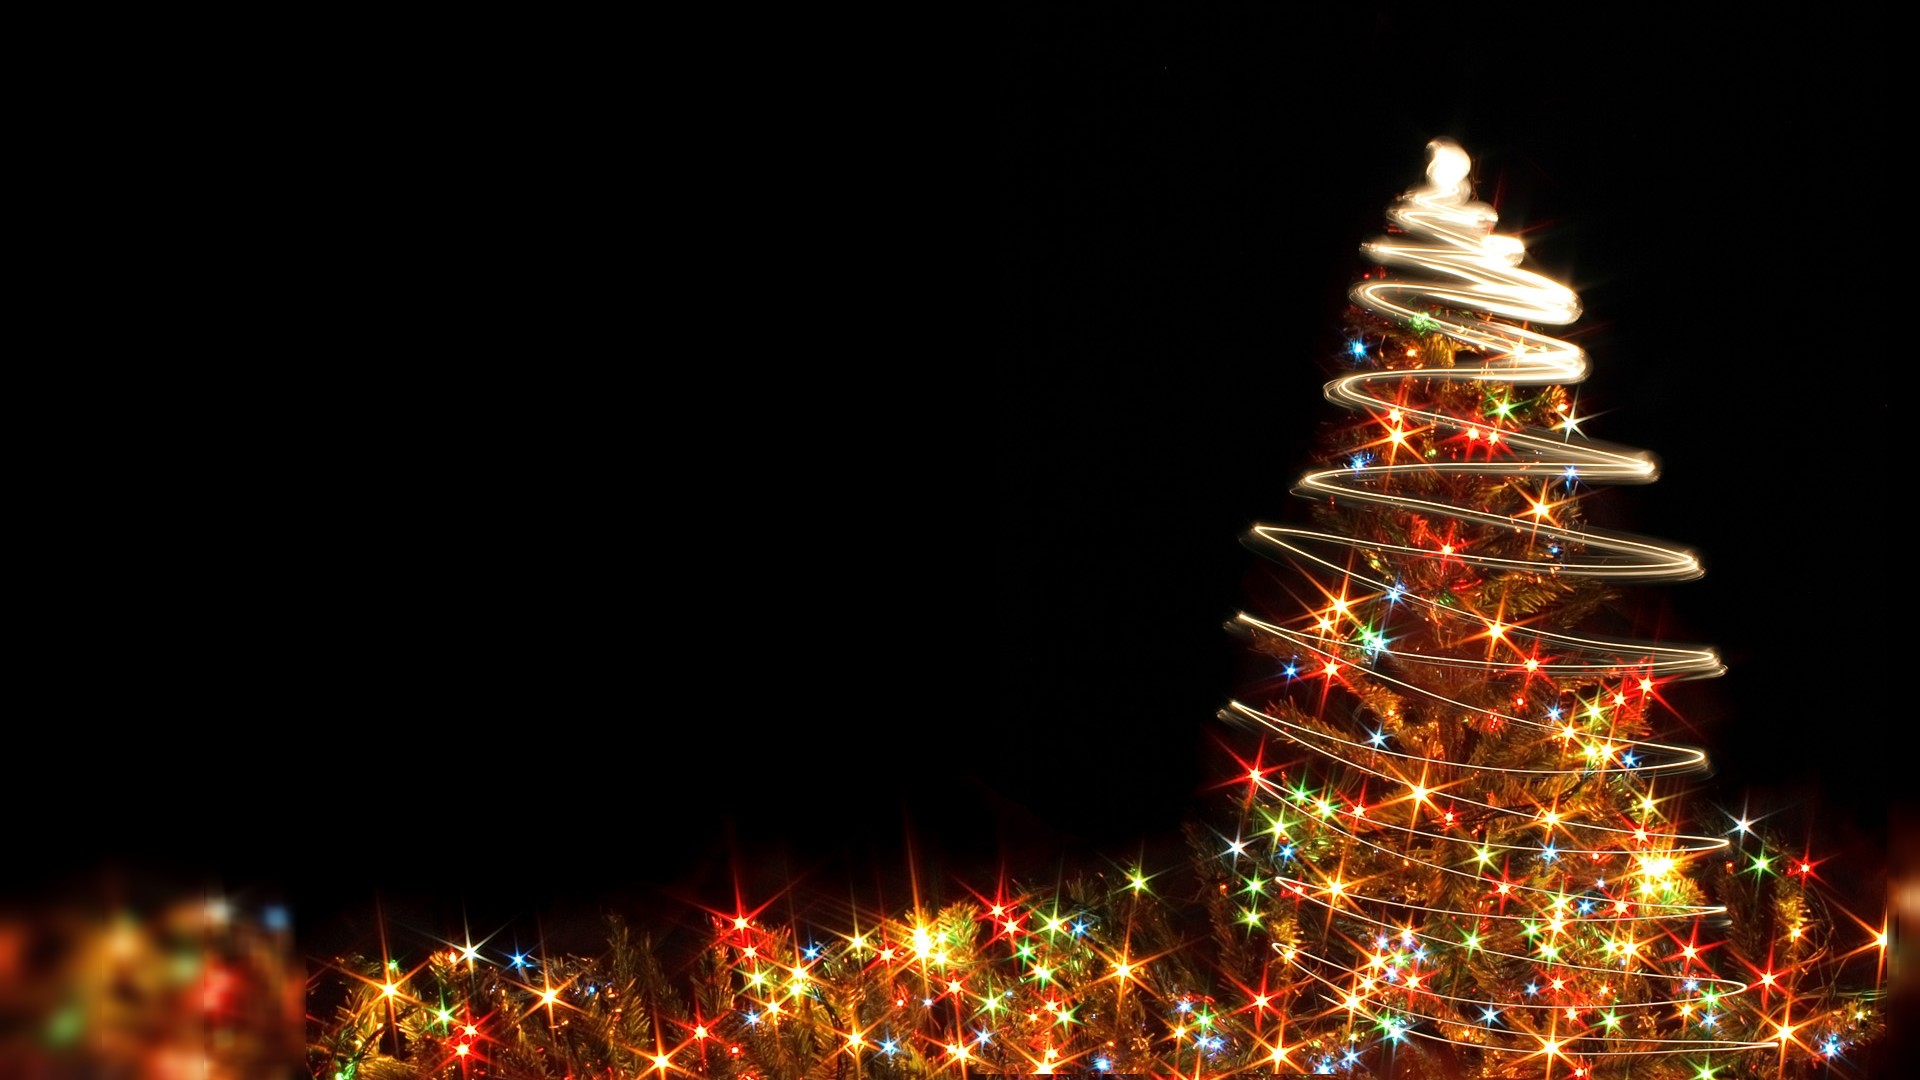 Christmas Wallpaper For Widescreen Computer 52 Images